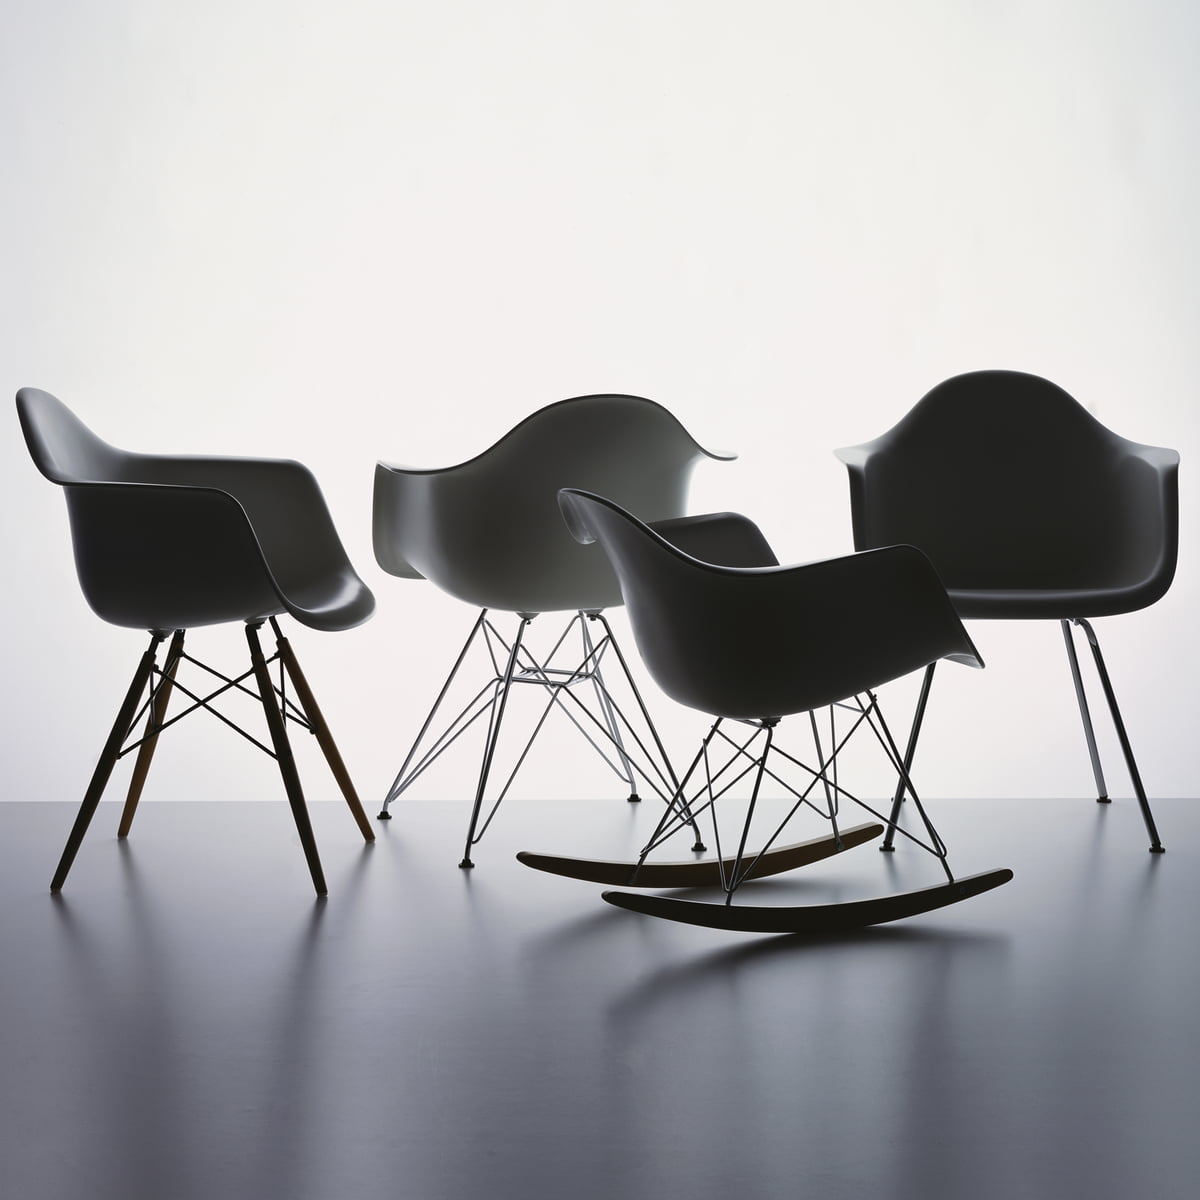 Eames Plastic Armchair DAX ambiance